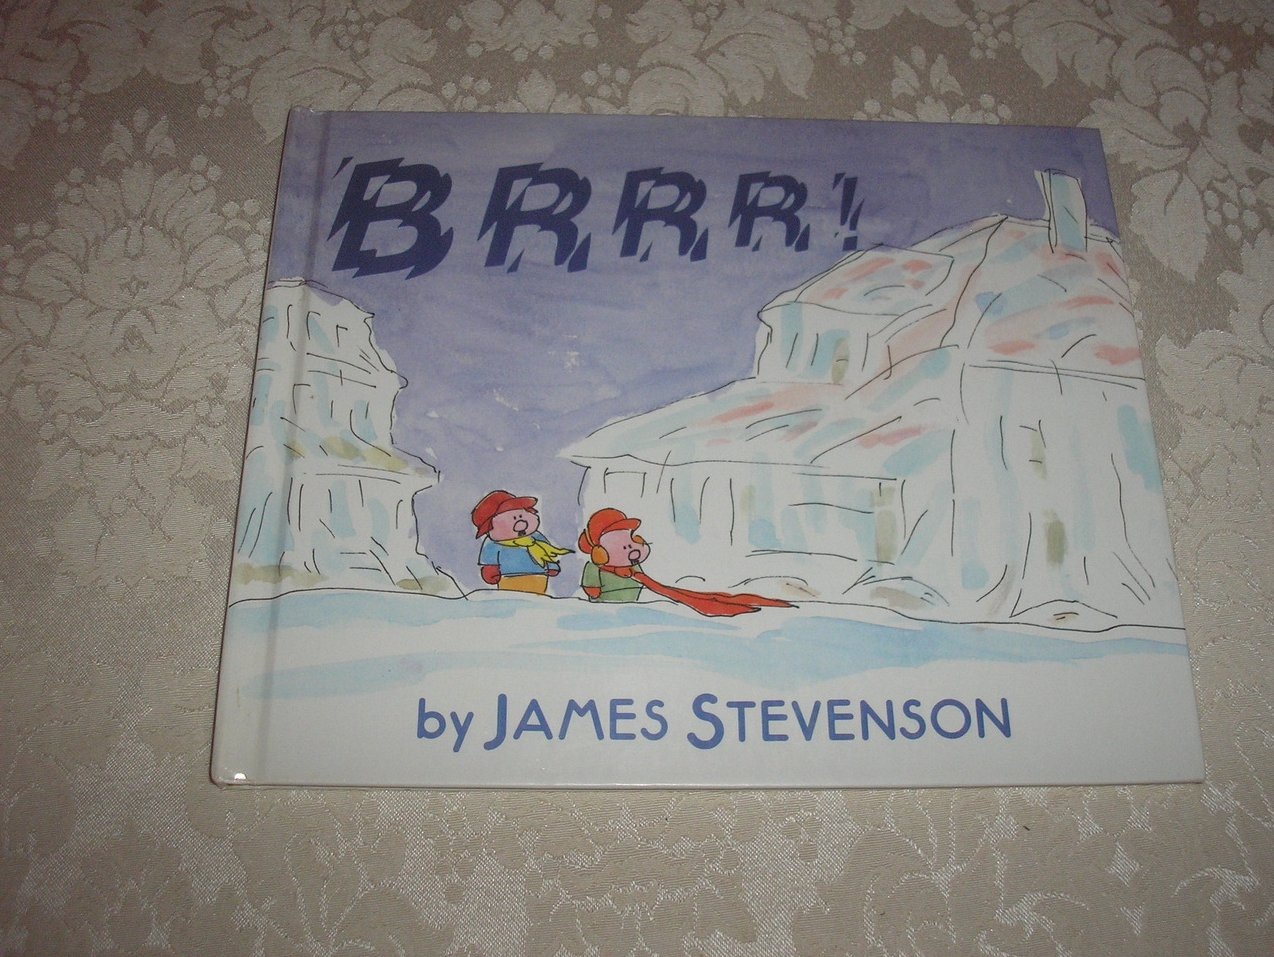 BRRR! James Stevenson Very Good Hardcover